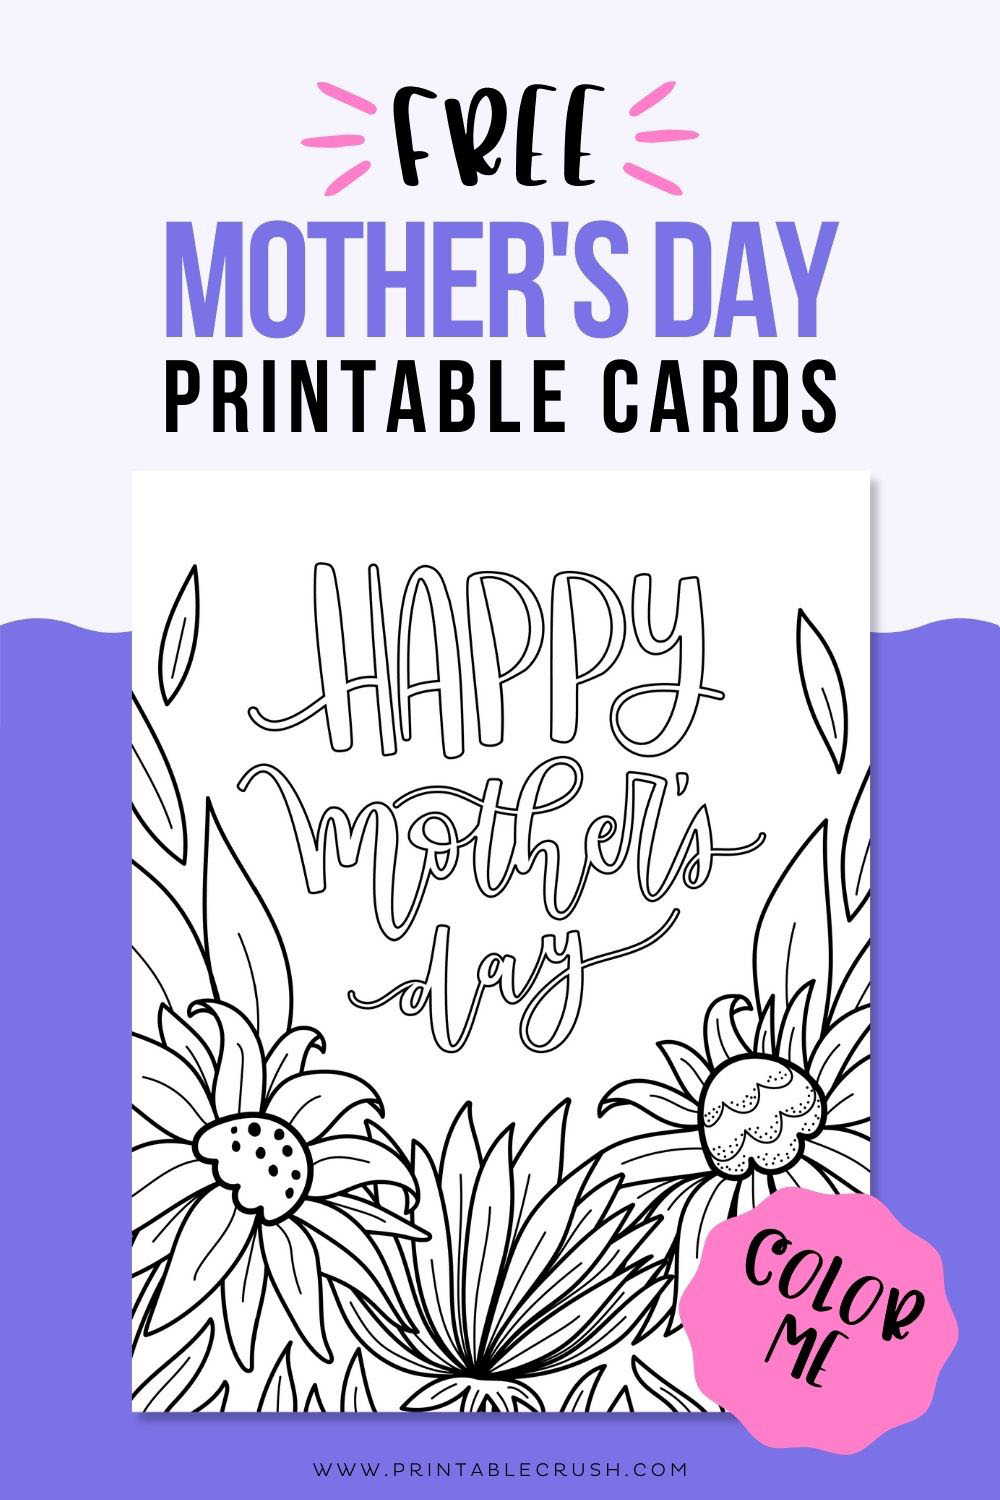 Free Mother's Day Printable Coloring Cards - Free Coloring Page for Mother's Day - Mother's Day Cards - Printable Crush